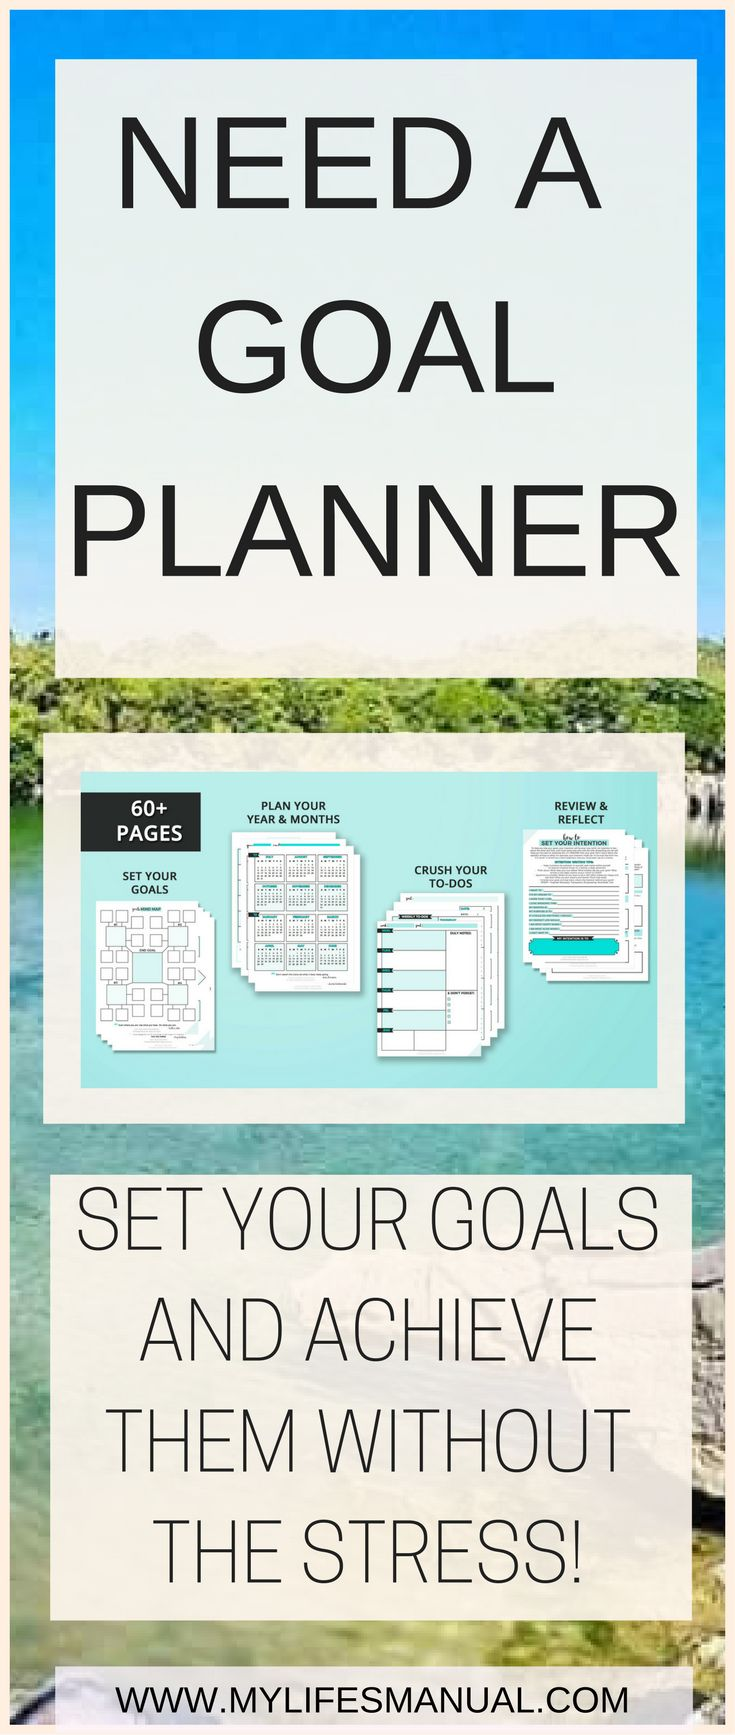 Looking for a planner for your personal and business goals? Slay Your Goals planner is for you. Set goals and achieve them without the stress and overwhelm. #goals #planner aff link